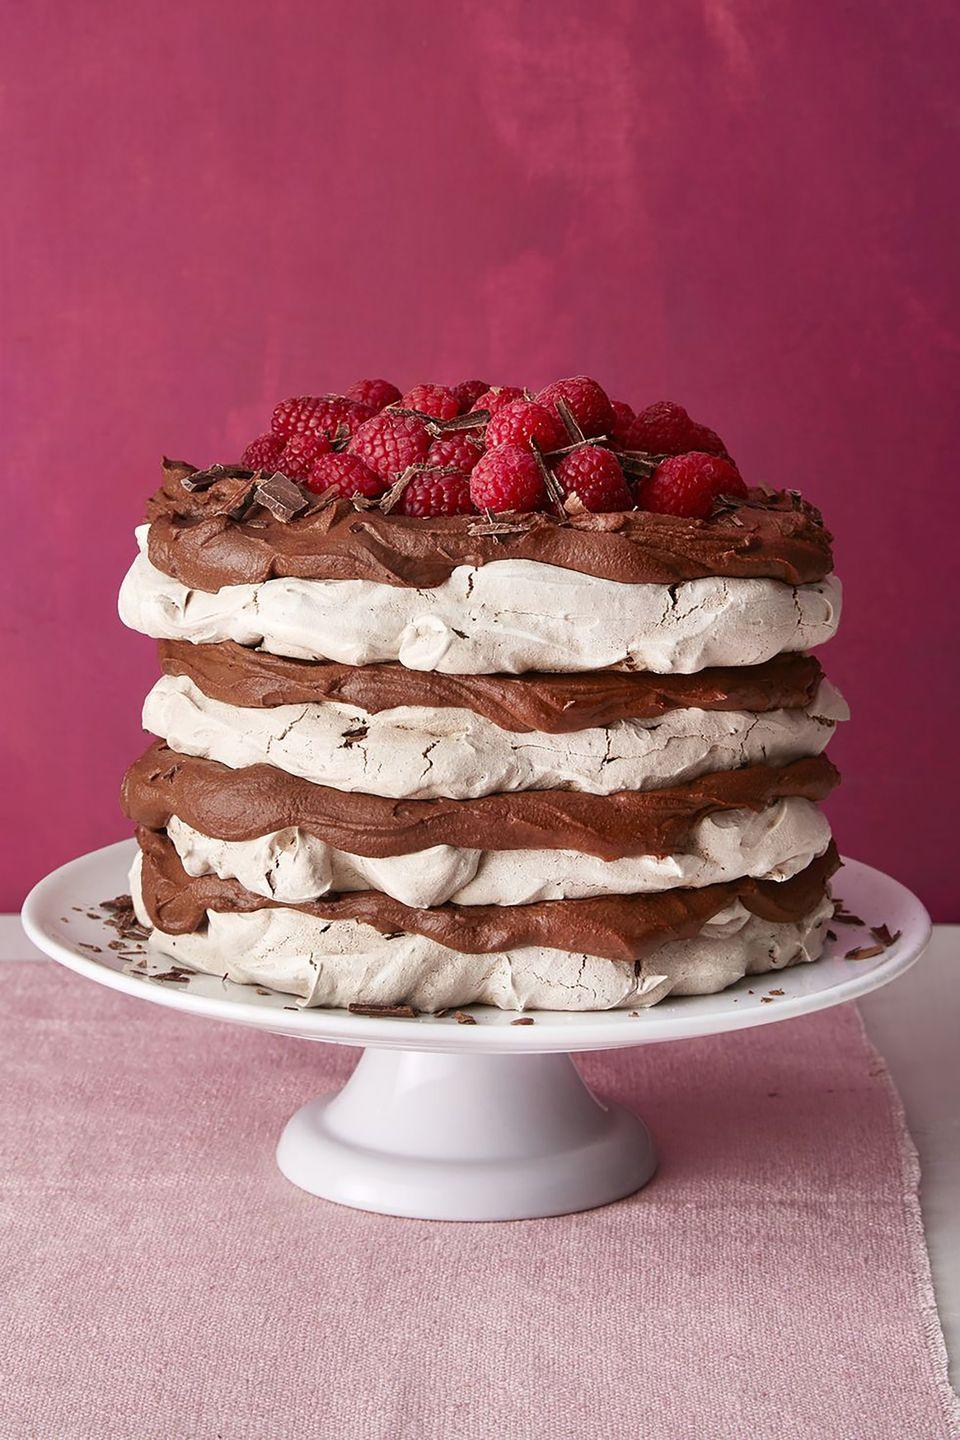 """<p>Mom won't be able to resist this decadent meringue layer cake that's filled with chocolate mousse and topped with fresh raspberries. </p><p><strong><a href=""""https://www.womansday.com/food-recipes/food-drinks/a19124220/chocolate-meringue-layer-cake-recipe/"""" rel=""""nofollow noopener"""" target=""""_blank"""" data-ylk=""""slk:Get the Chocolate Meringue Layer Cake recipe."""" class=""""link rapid-noclick-resp""""><em>Get the Chocolate Meringue Layer Cake recipe.</em></a></strong></p>"""